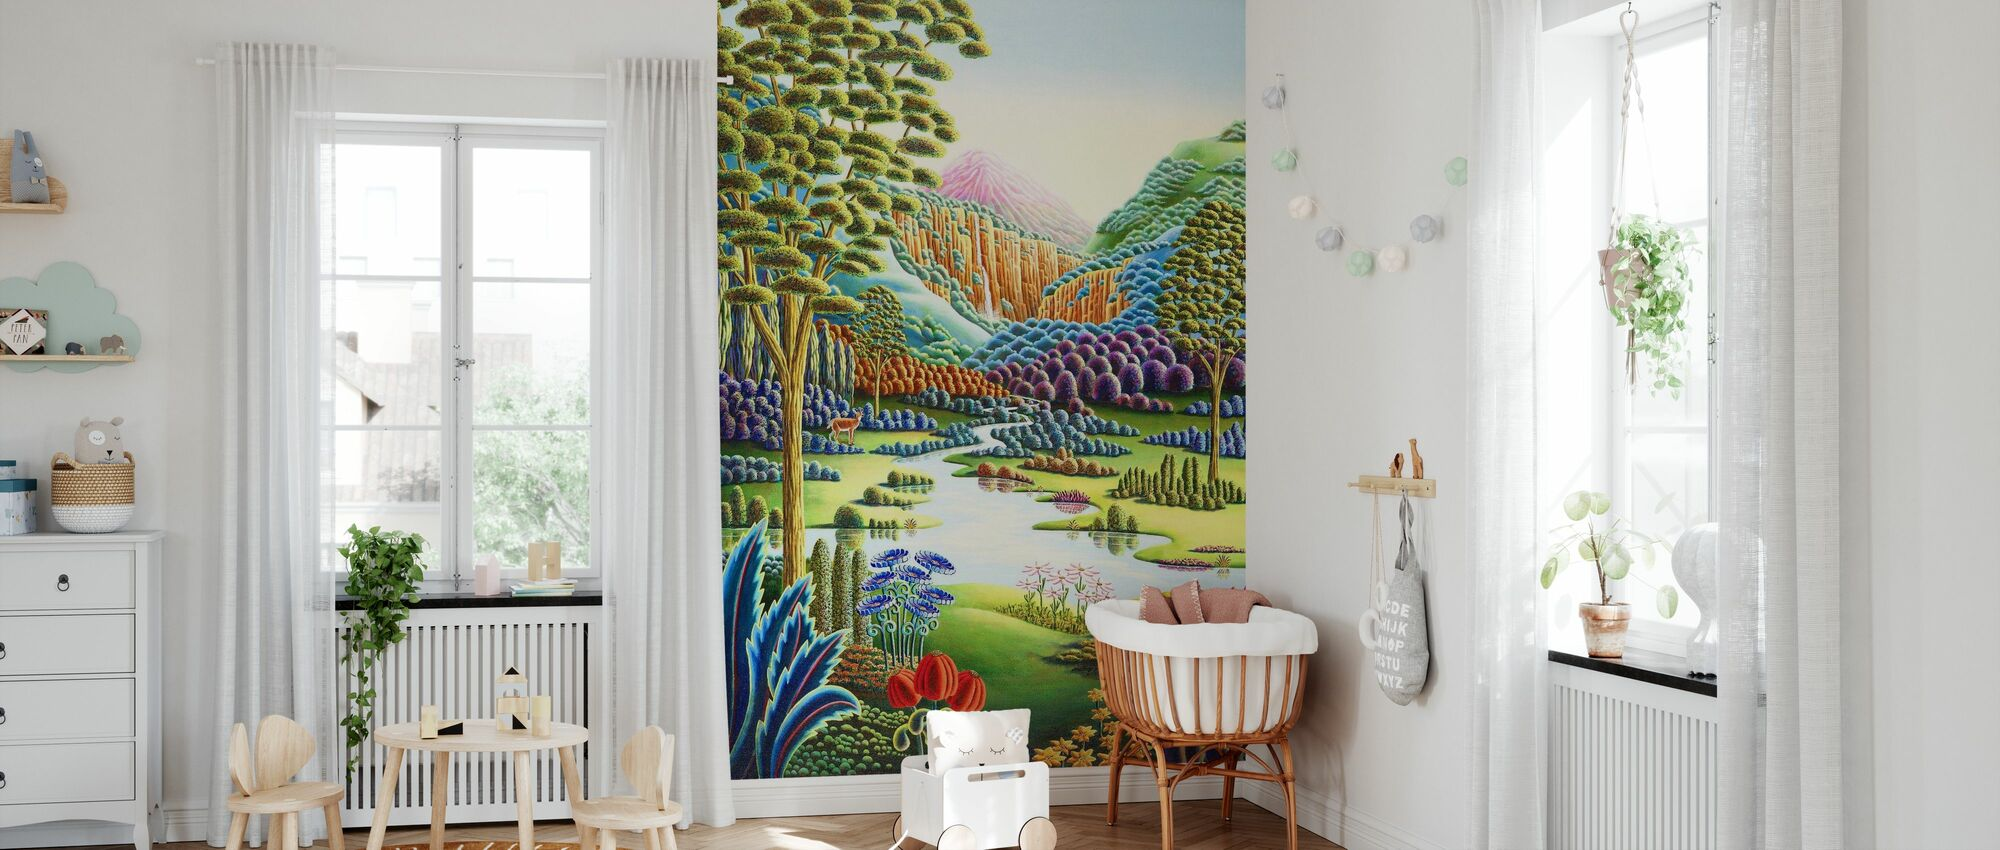 Eden - Wallpaper - Nursery